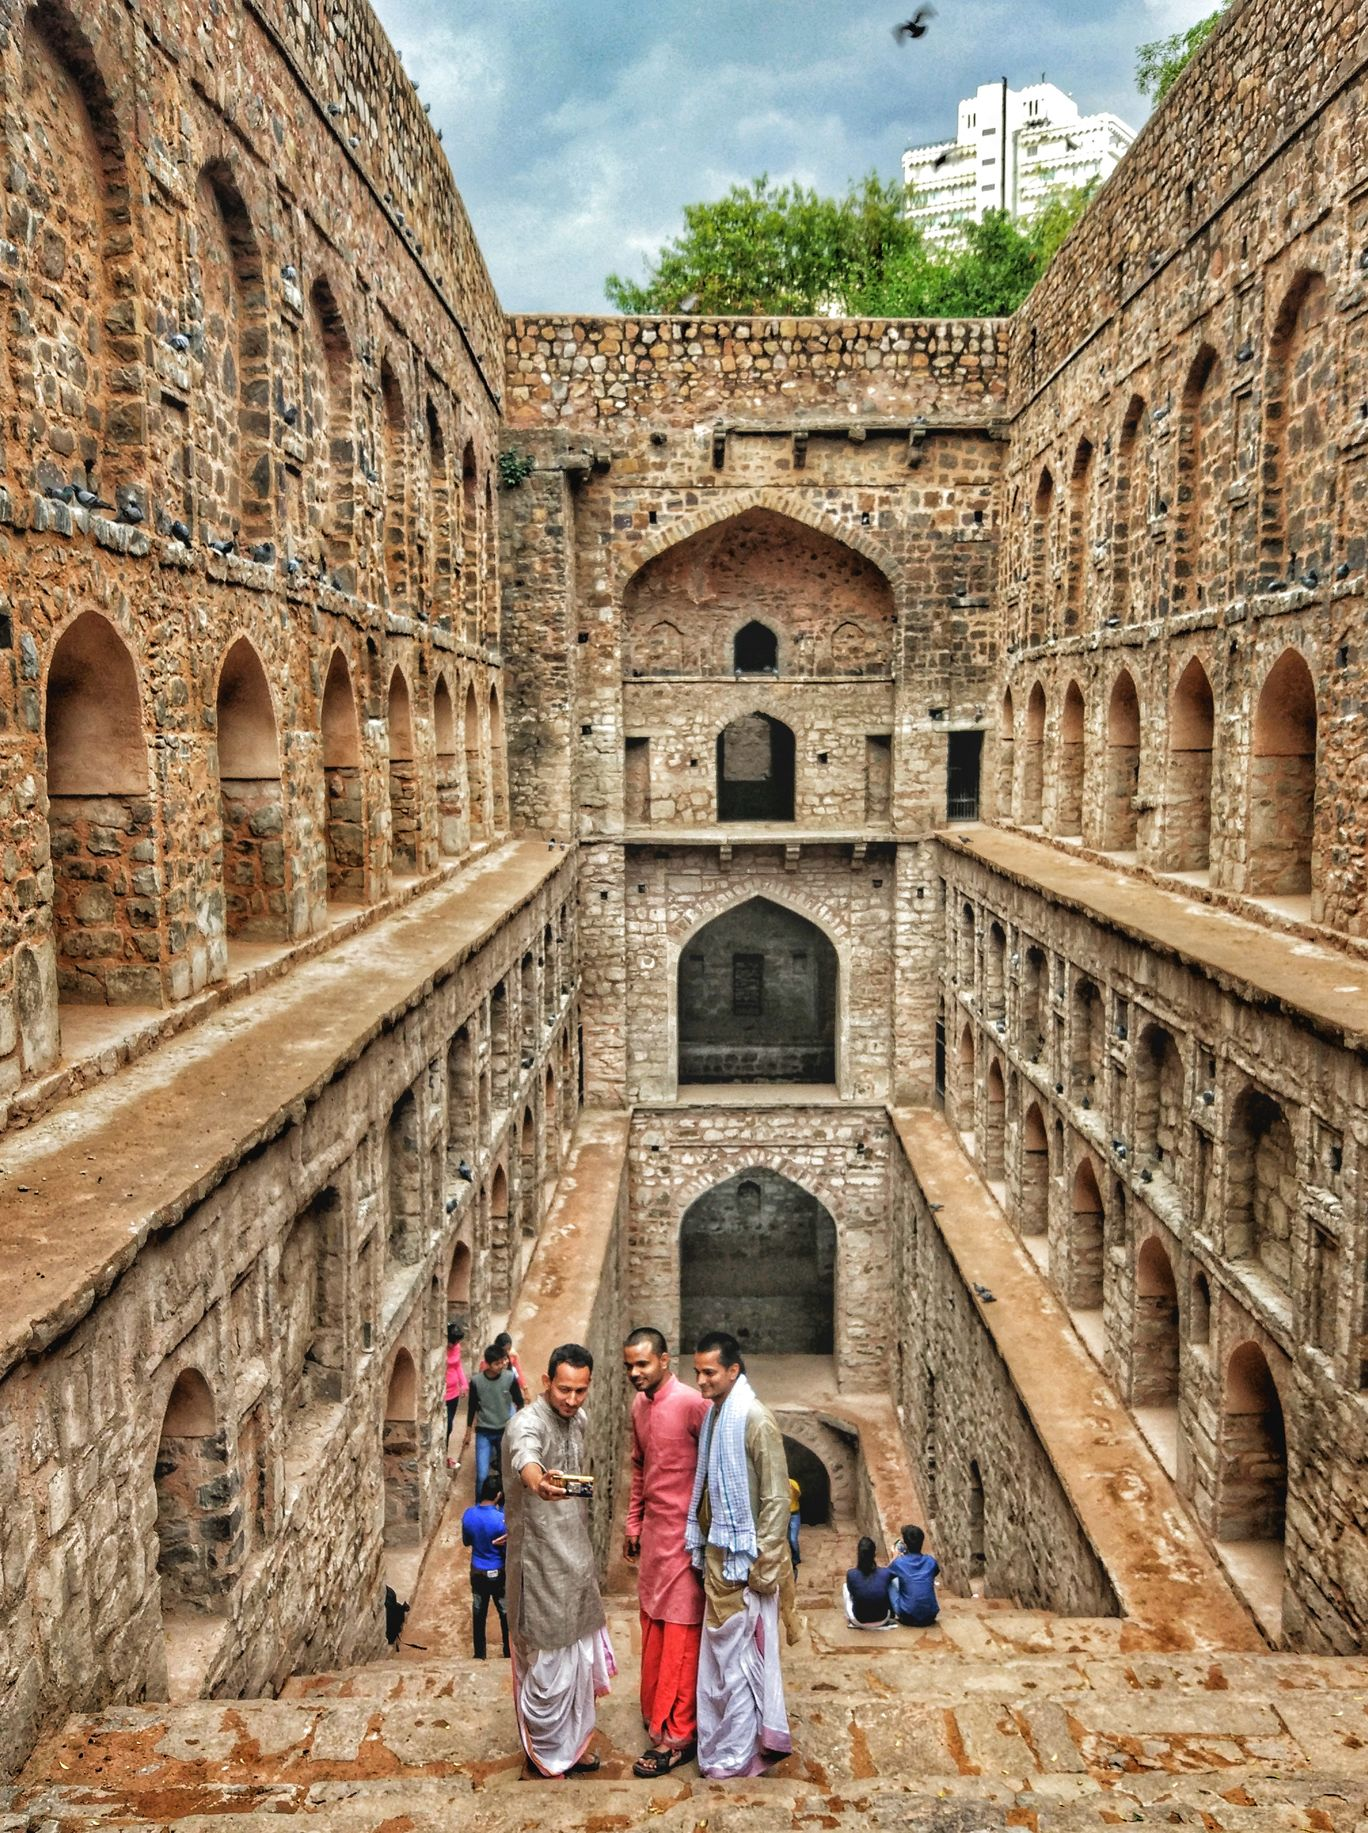 Photo of Ugrasen ki baoli By Etti Bali